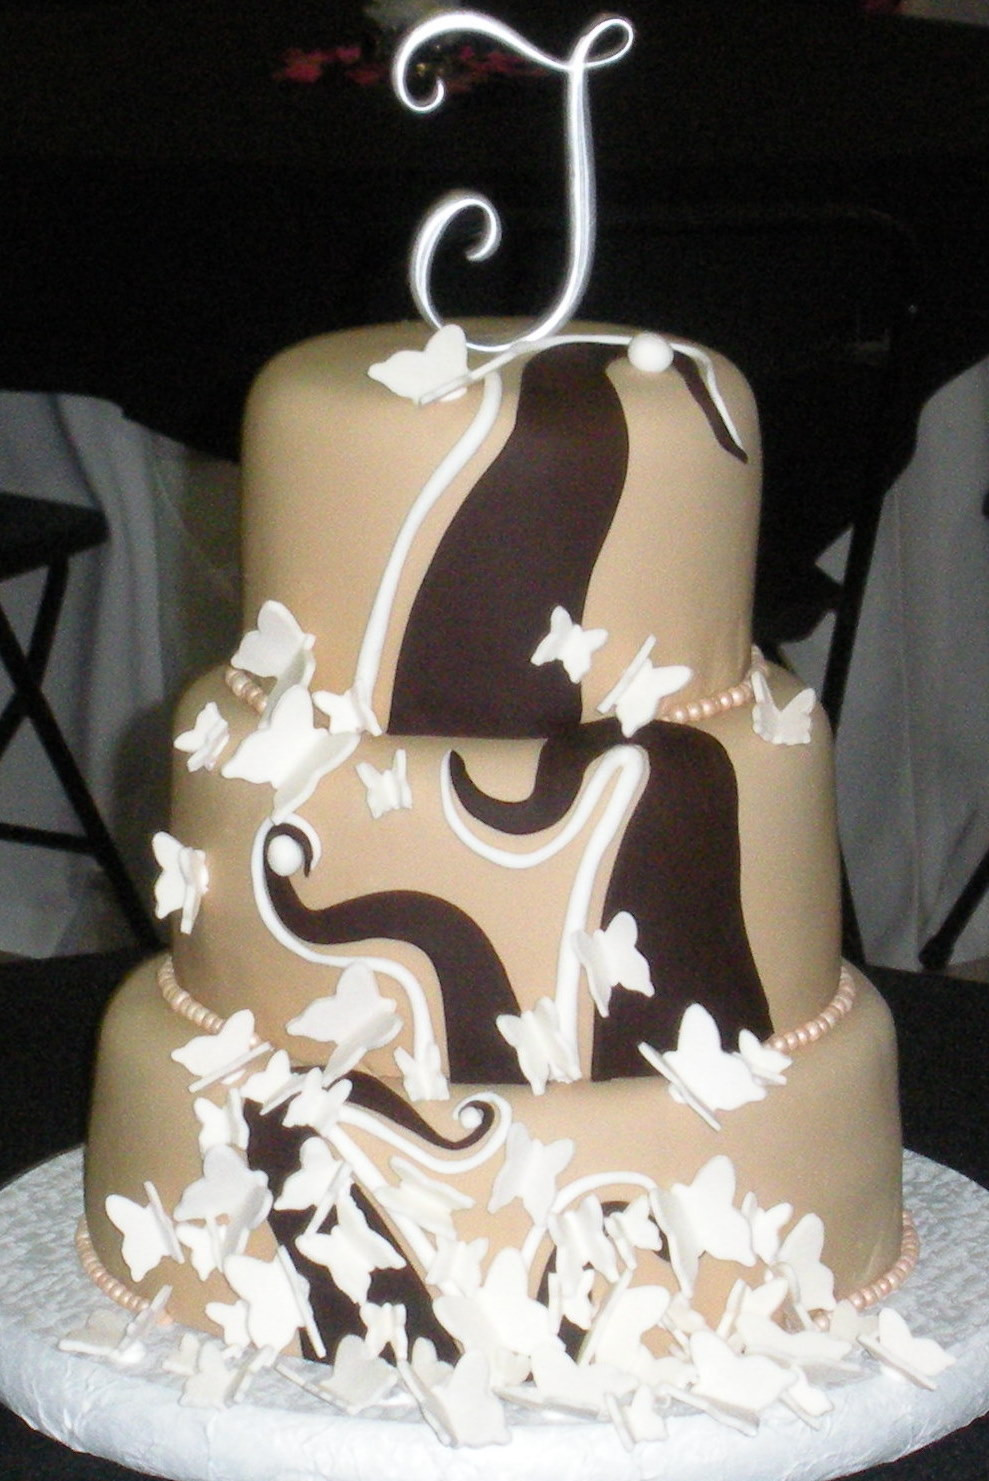 Chocolate And White Wedding Cakes  New trends for custom fondant wedding cakes in 2010